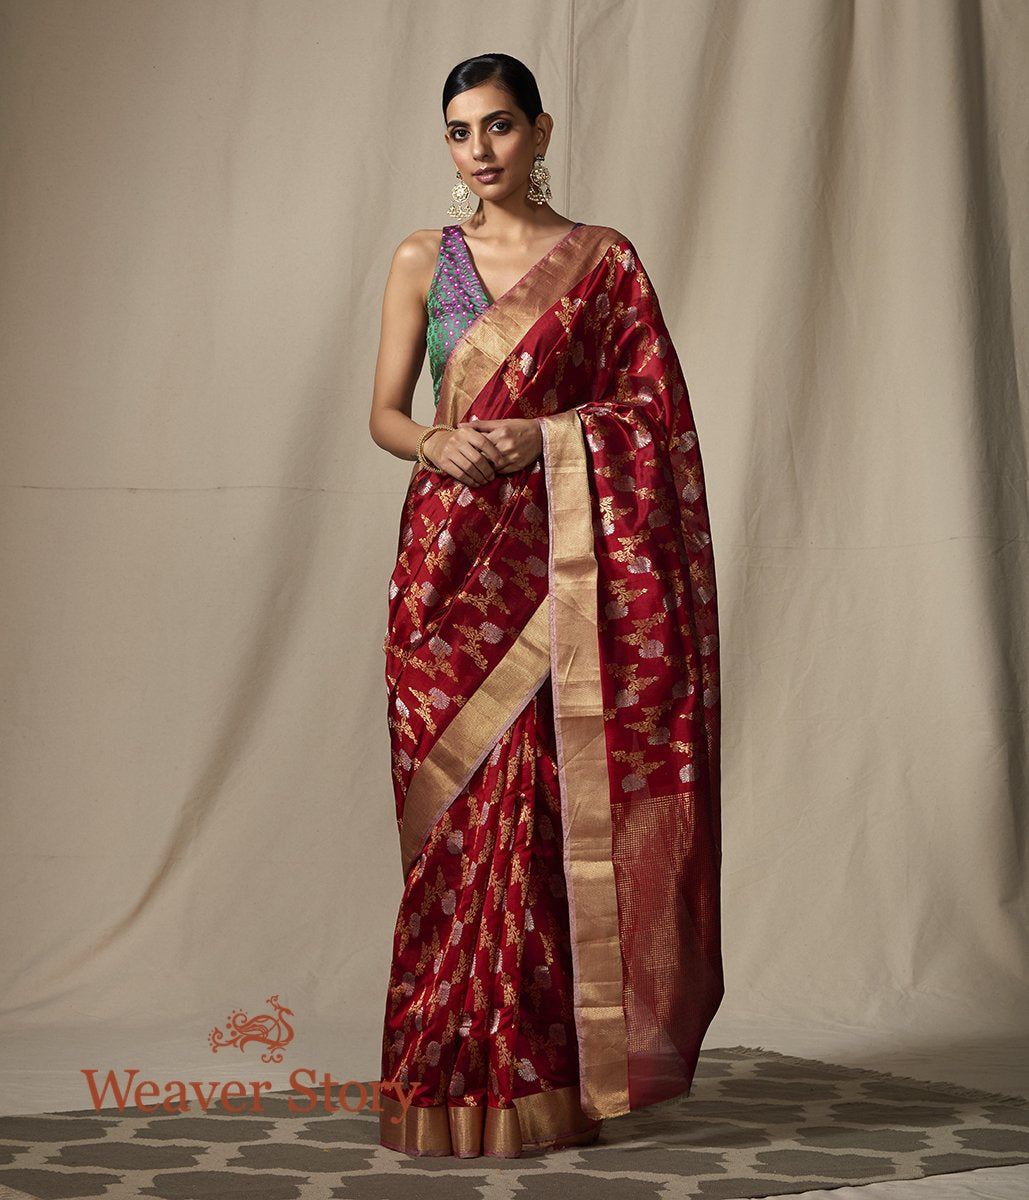 Handwoven Maroon Chanderi Silk Saree with Floral Jaal